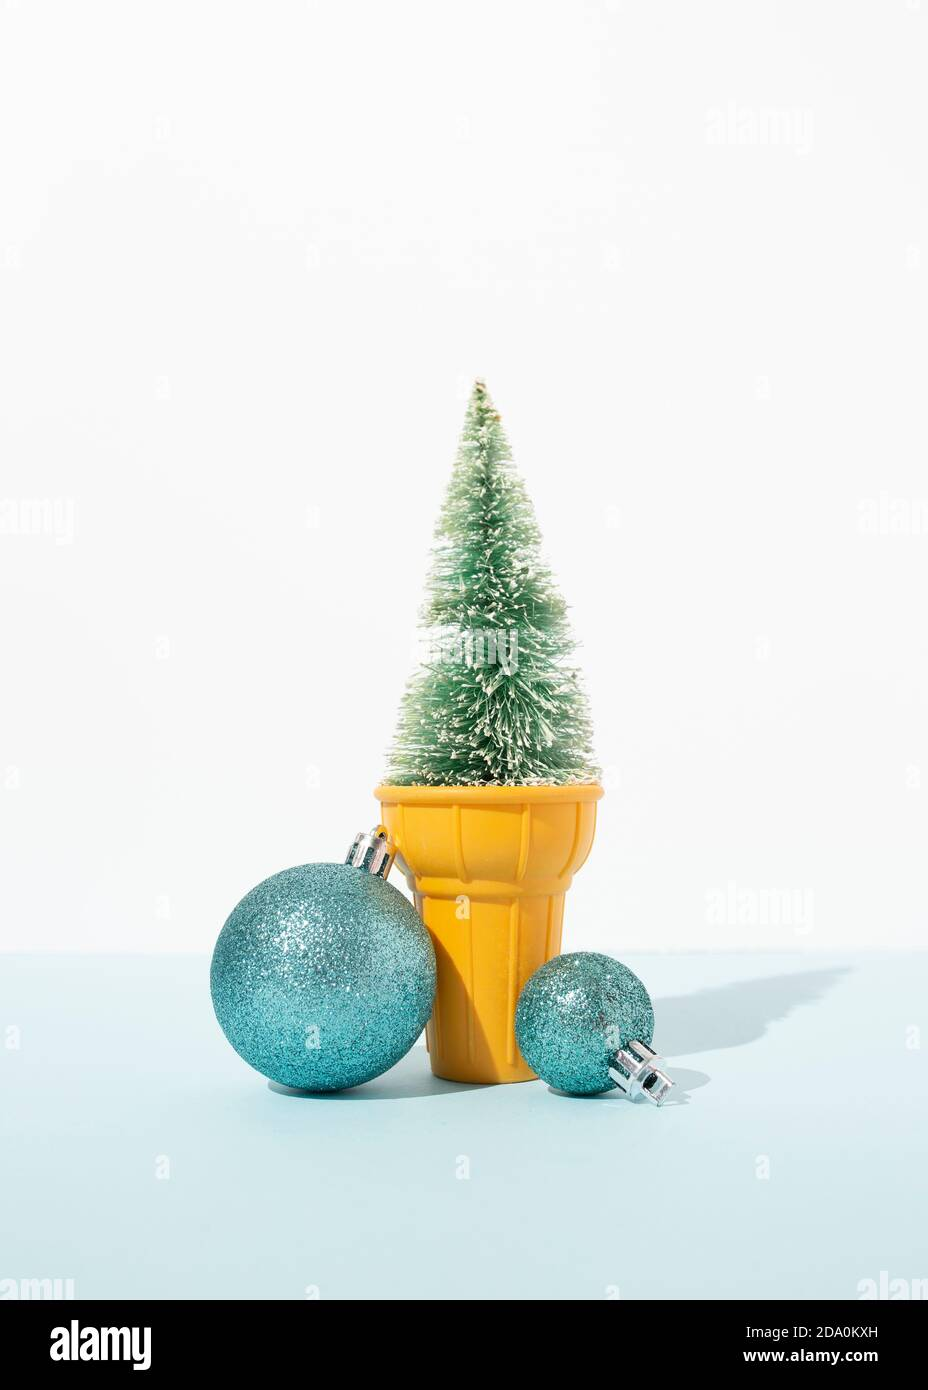 Artificial Spruce Branches Decorated With Silver Christmas Baubles Placed In Ice Cream Cup On Table In Studio On Blue Background Stock Photo Alamy